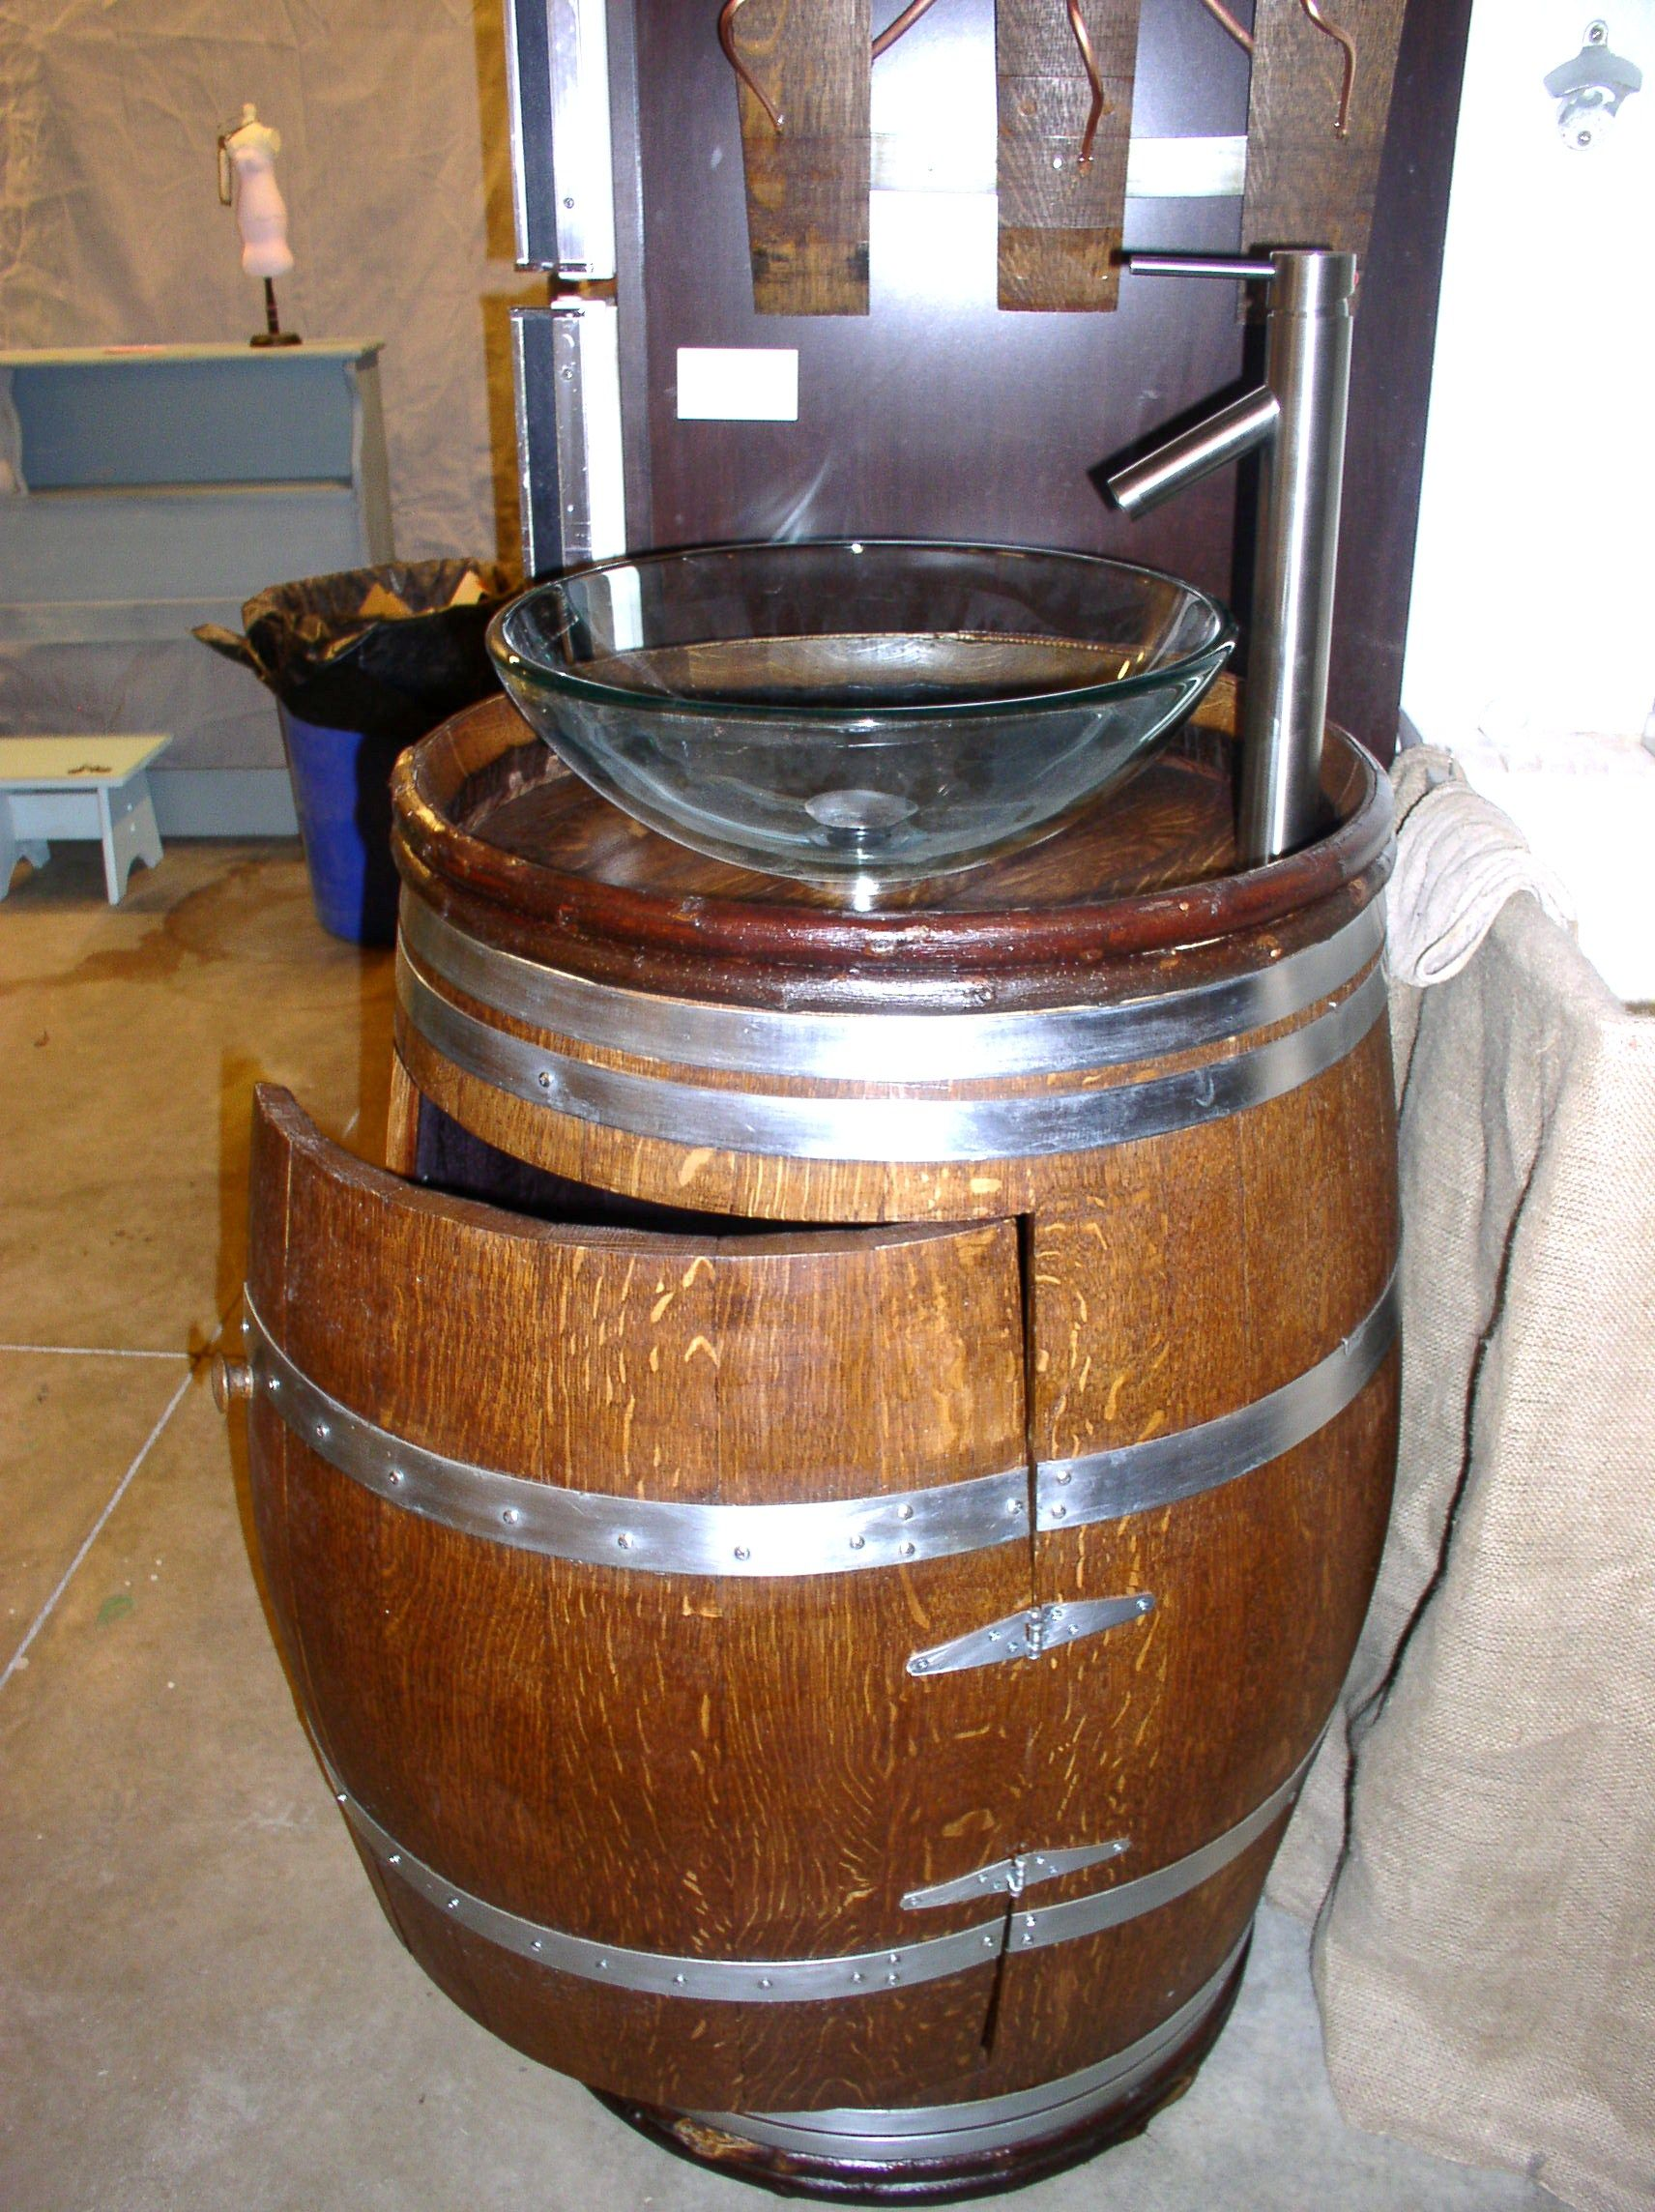 Whiskey barrels sink vanity with storage side view to see hinges and how they cut it